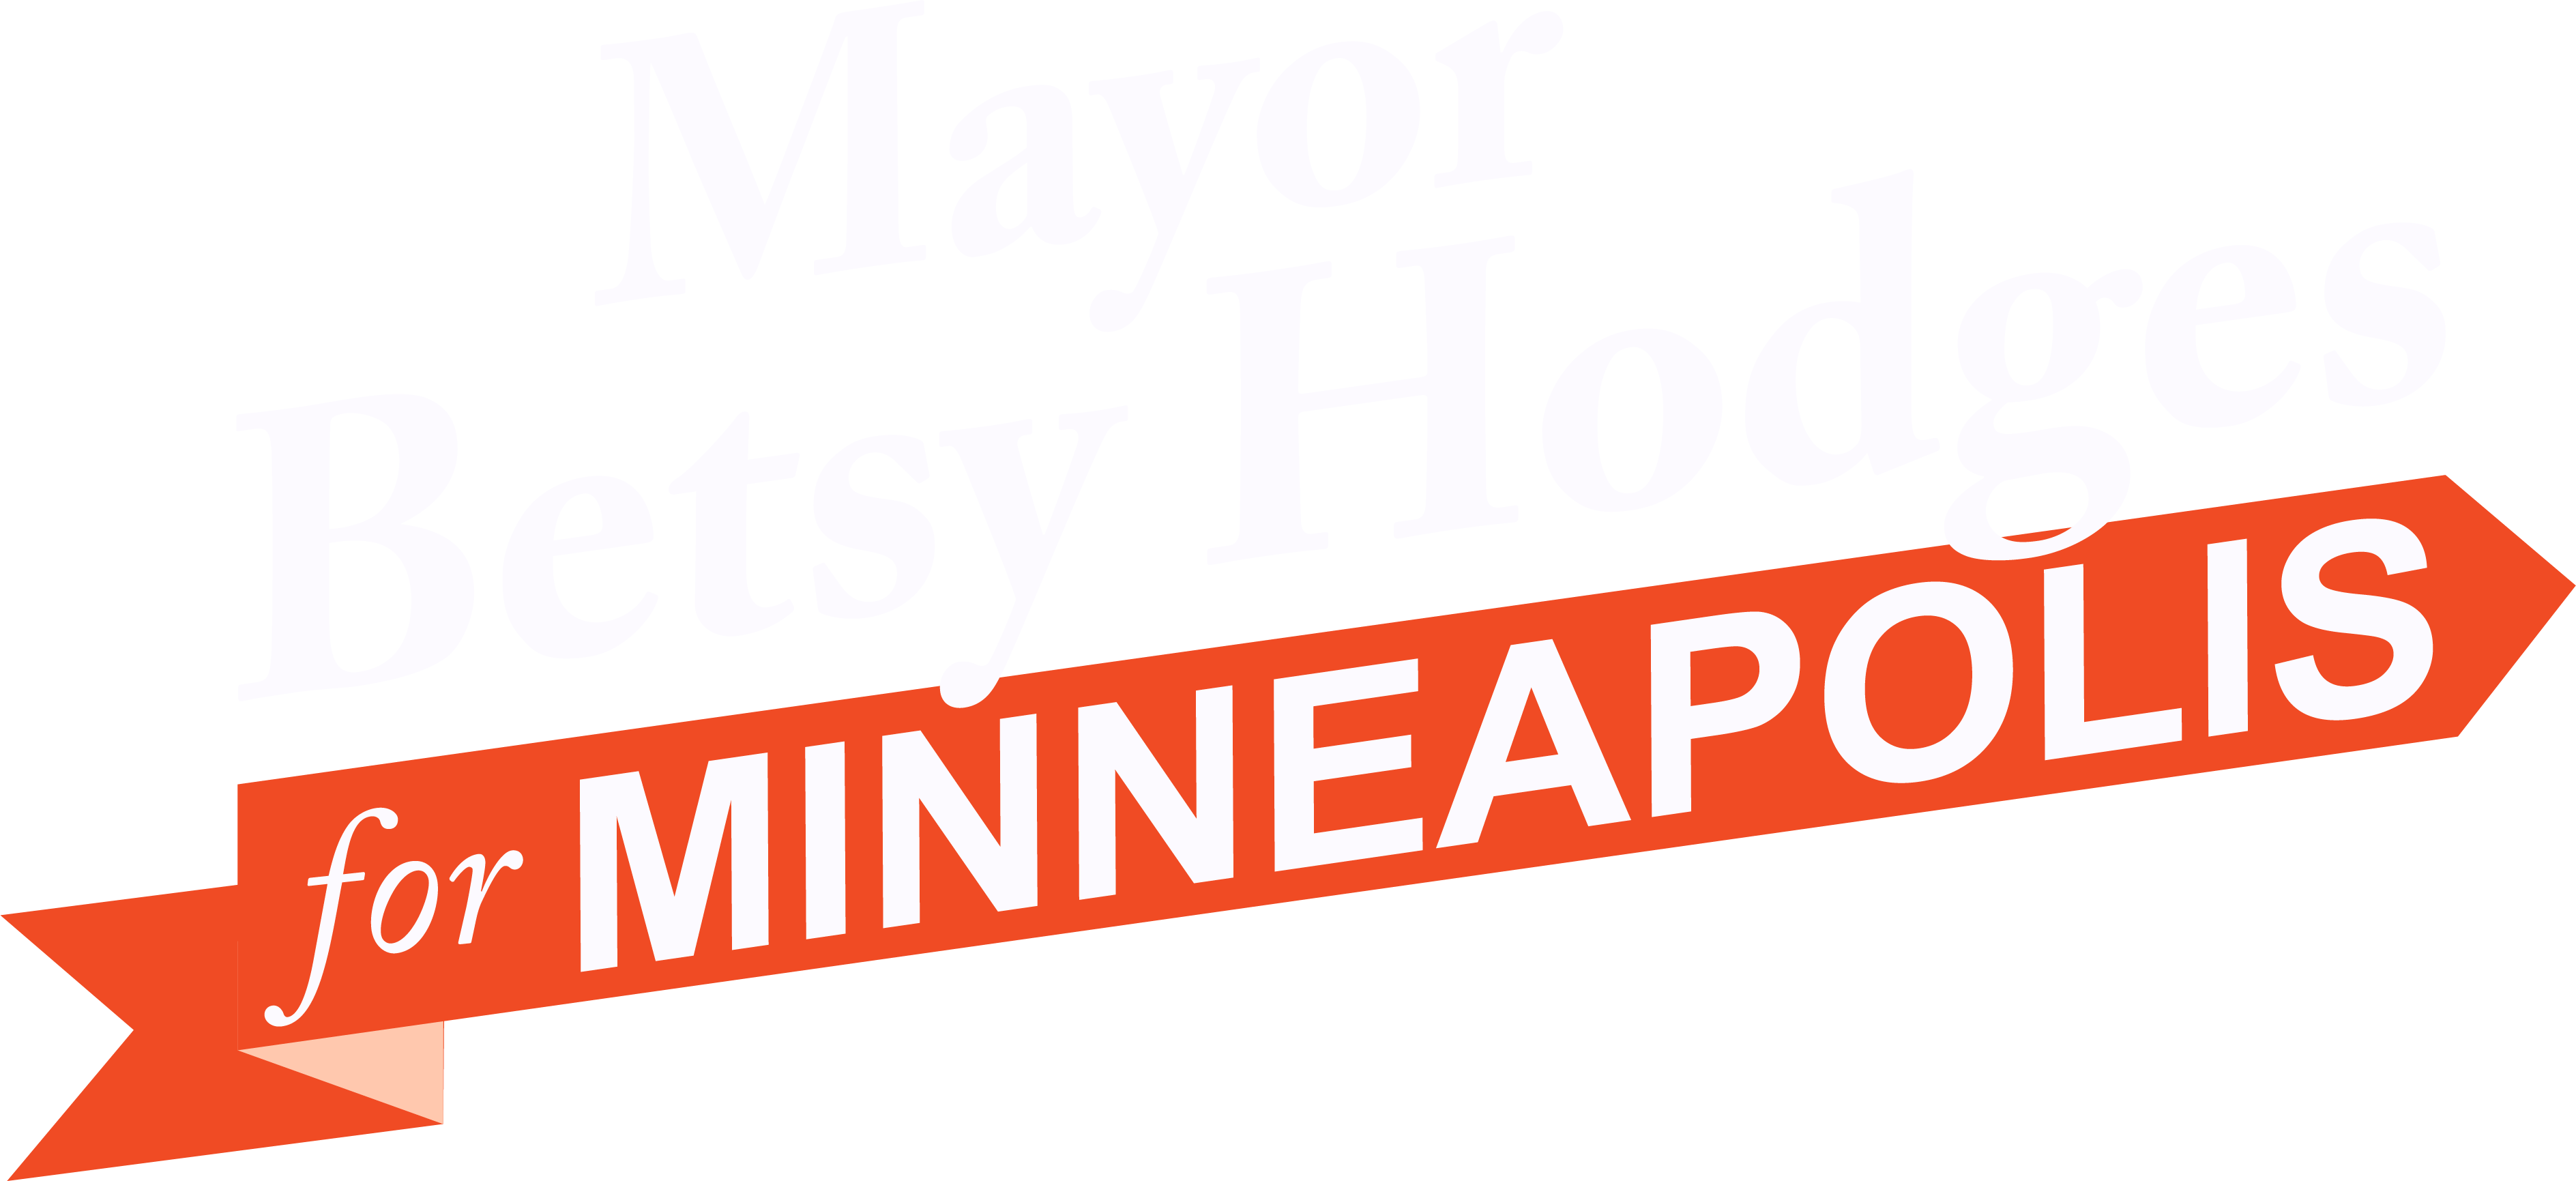 Mayor Betsy Hodges for Minneapolis